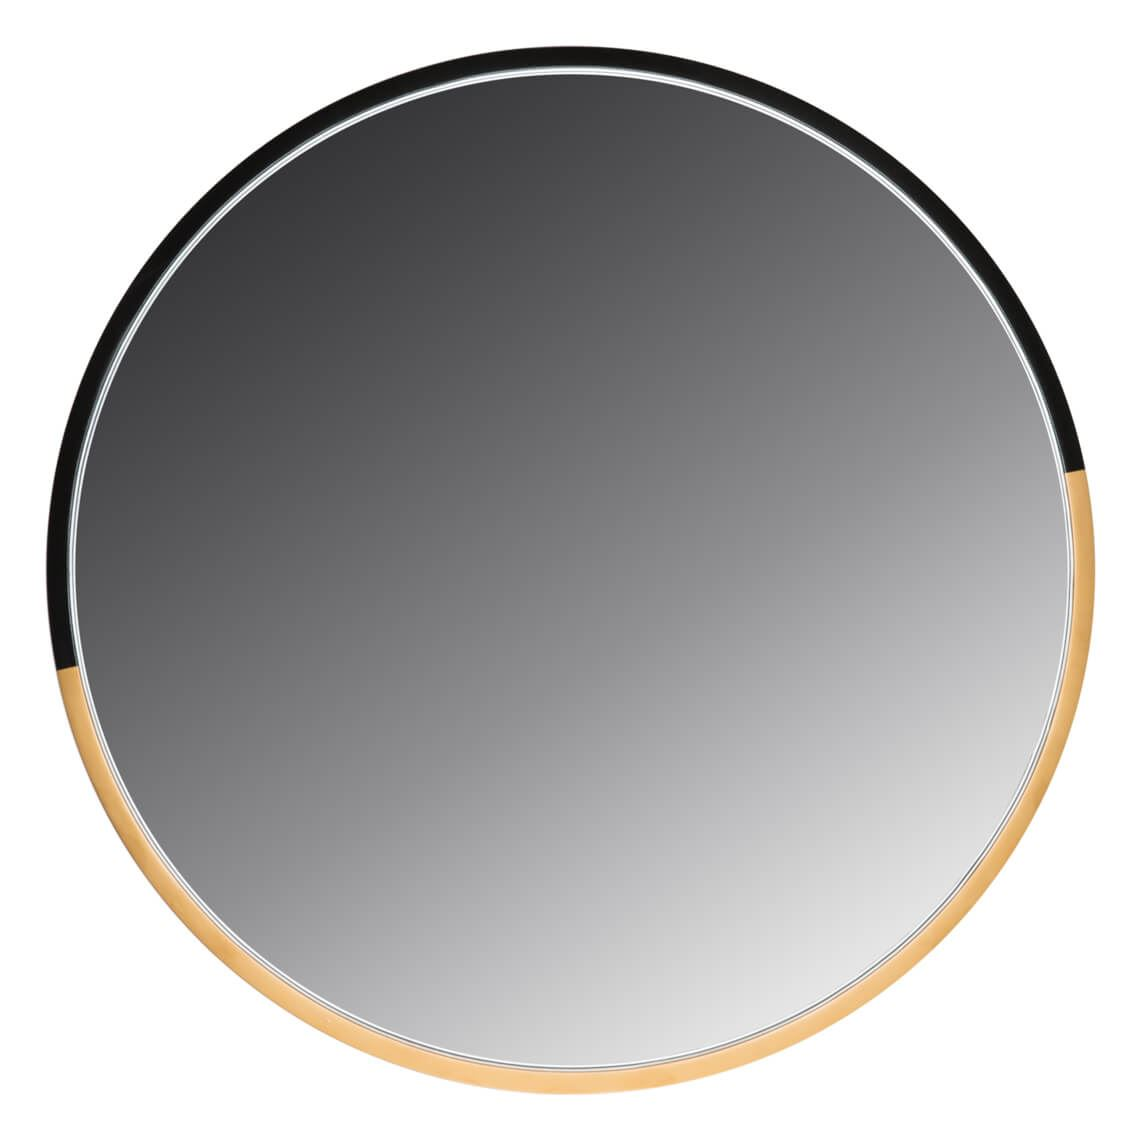 Vale Round Mirror Size W 90cm x D 2cm x H 90cm Iron/Mirrored Glass Freedom by Freedom, a Mirrors for sale on Style Sourcebook